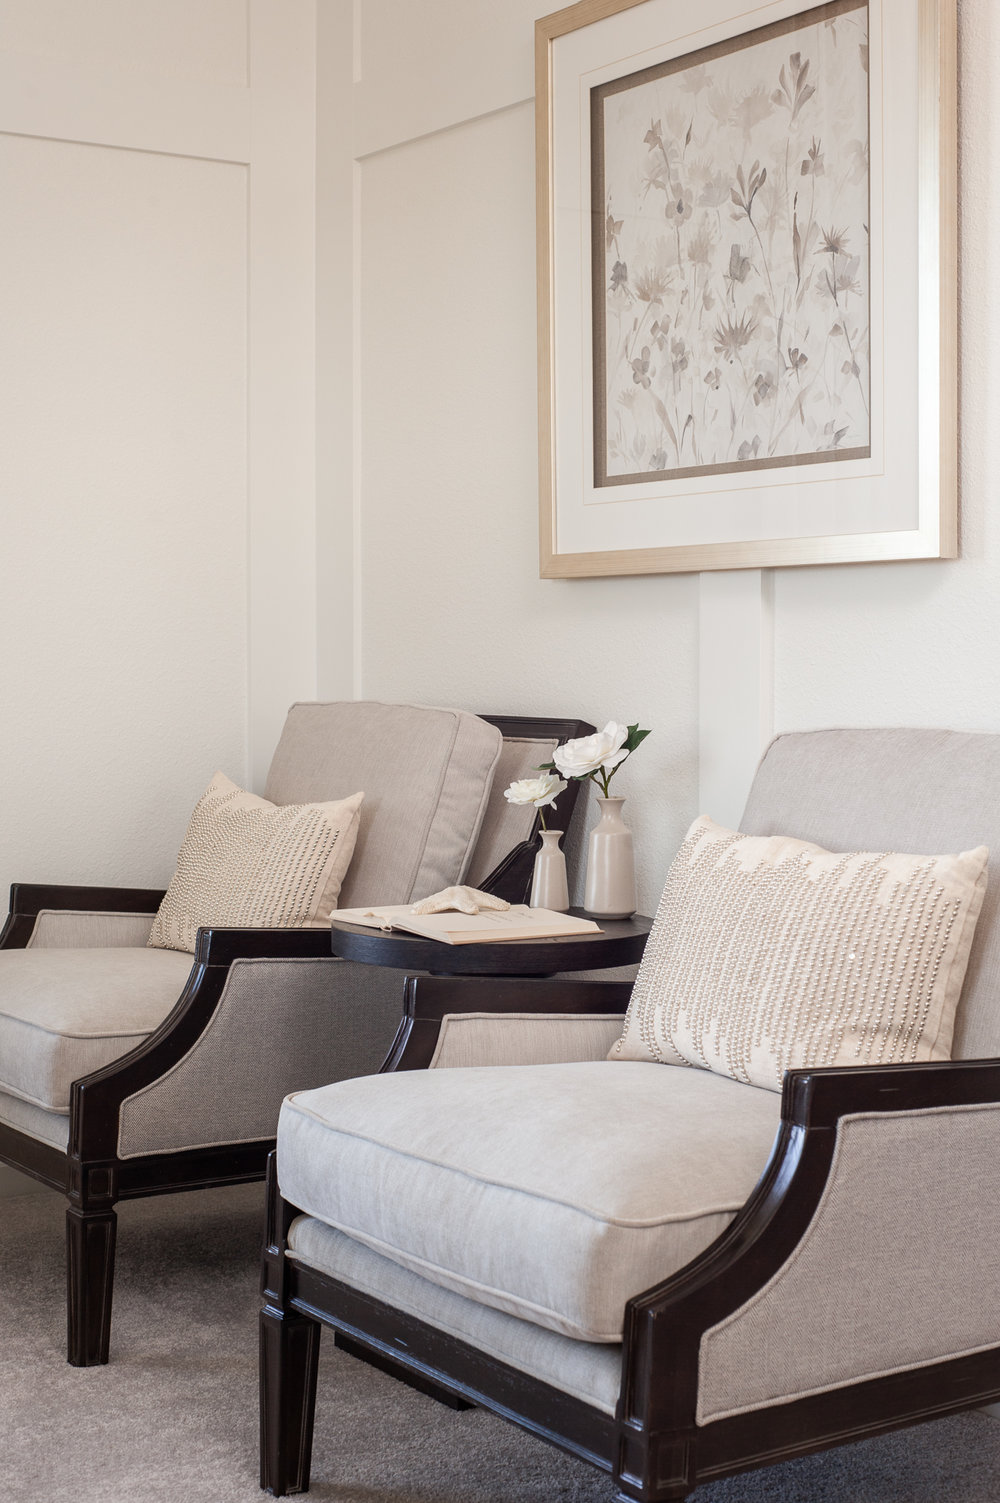 Micamy_Interior Designer_Design_Interior_Model_Merchandising_Owners_Suite_Universal_Furniture_Traditional_Transitional_Side Chairs_Artwork_Styling_Lennar.jpg